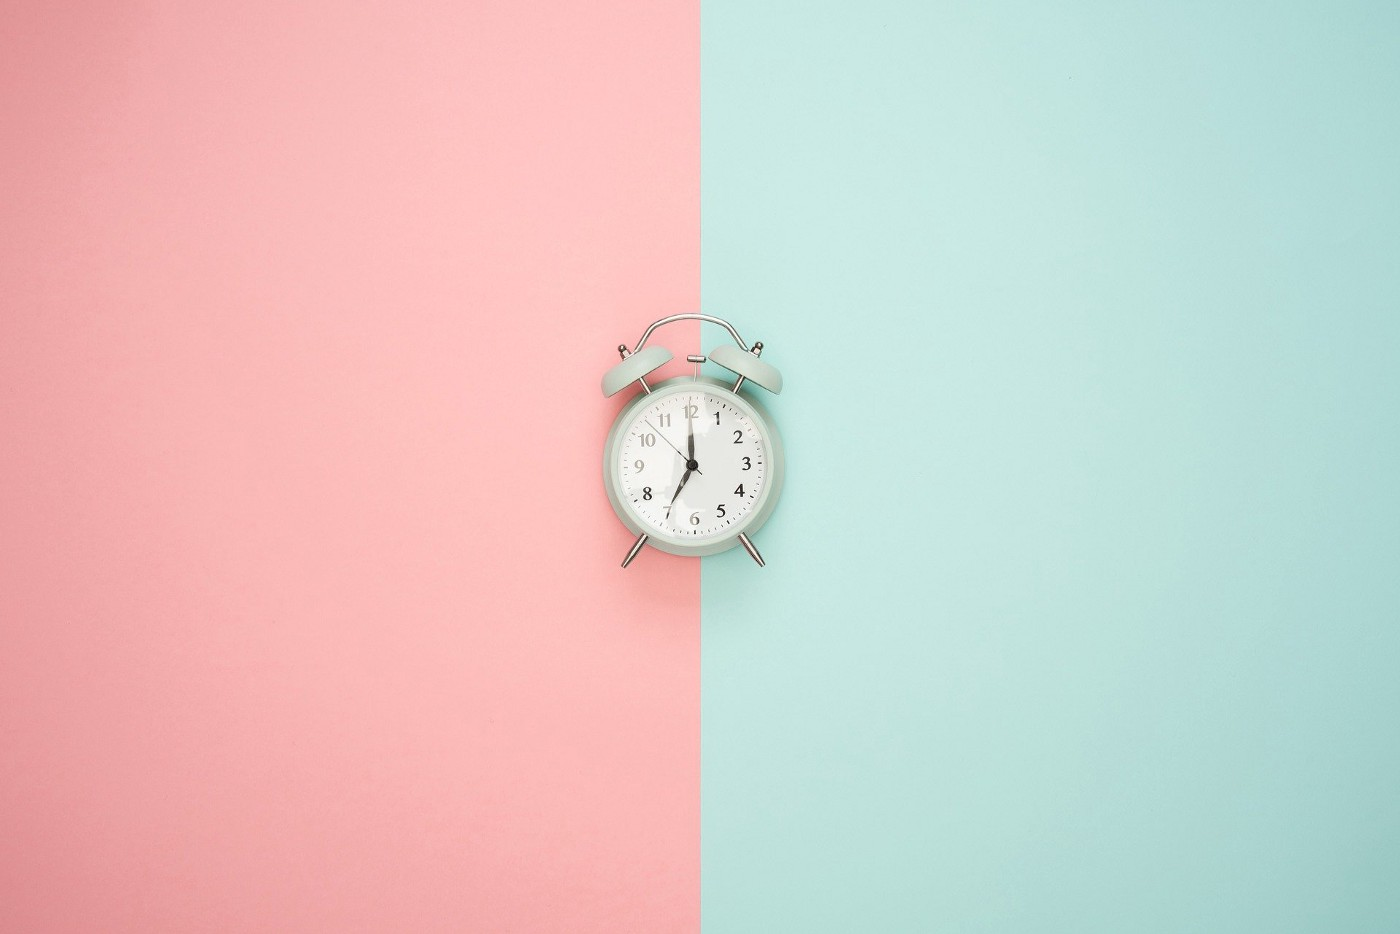 Clock on wall with two pastel colors.